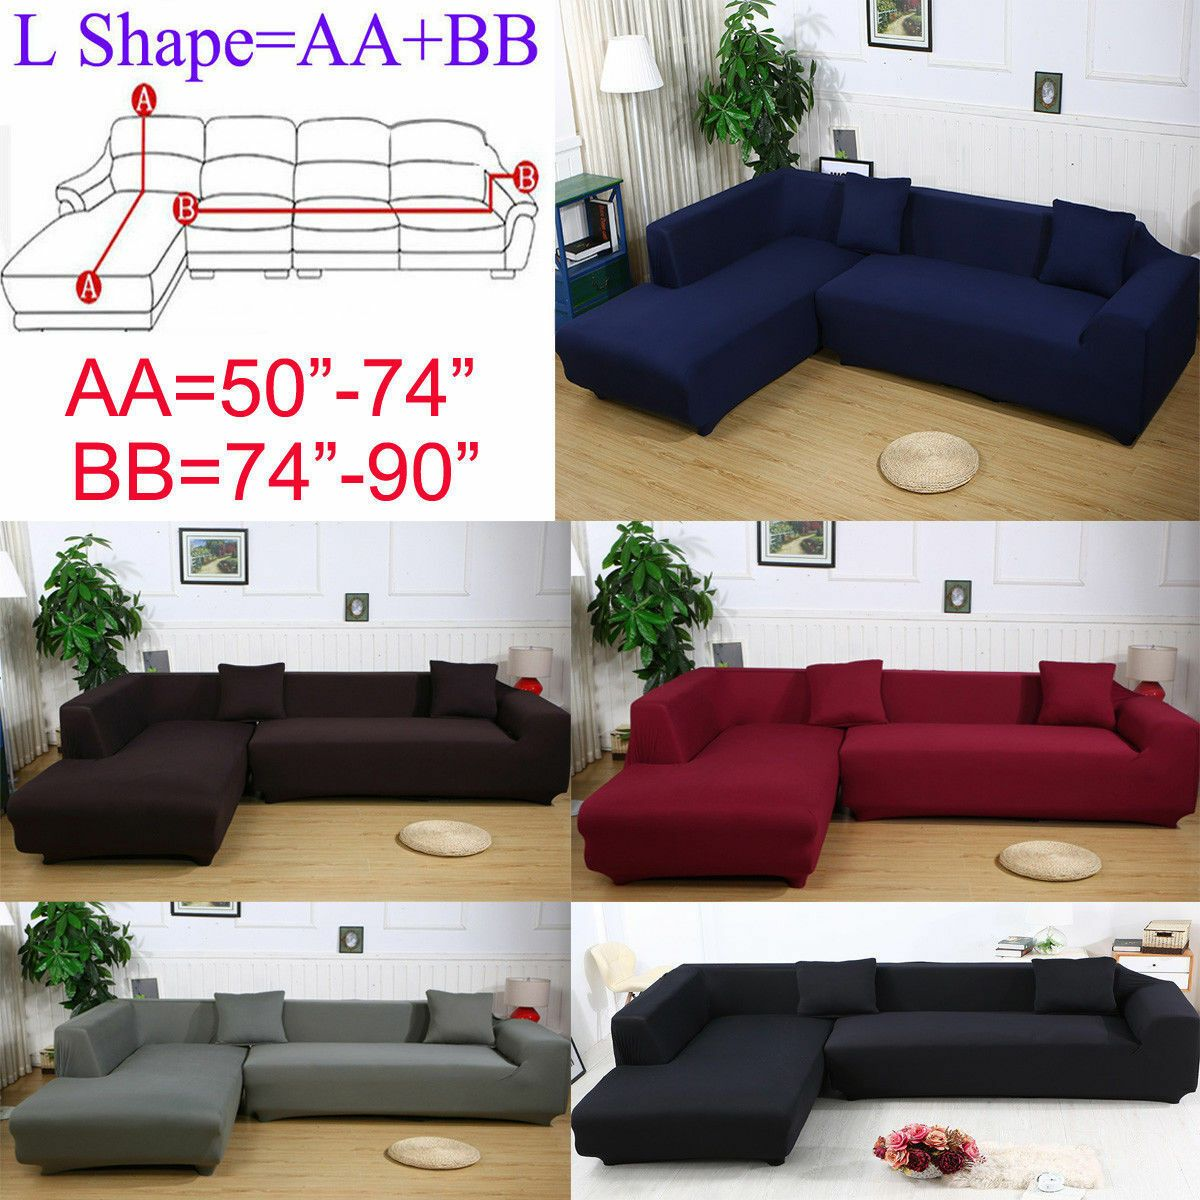 2 Seats 3 Seats Plush Stretch L Shaped Sectional Sofa Slip Covers Set Sofa Set Sofaset In 2020 Fabric Sofa Cover Sectional Sofa Slipcovers Sofa Covers